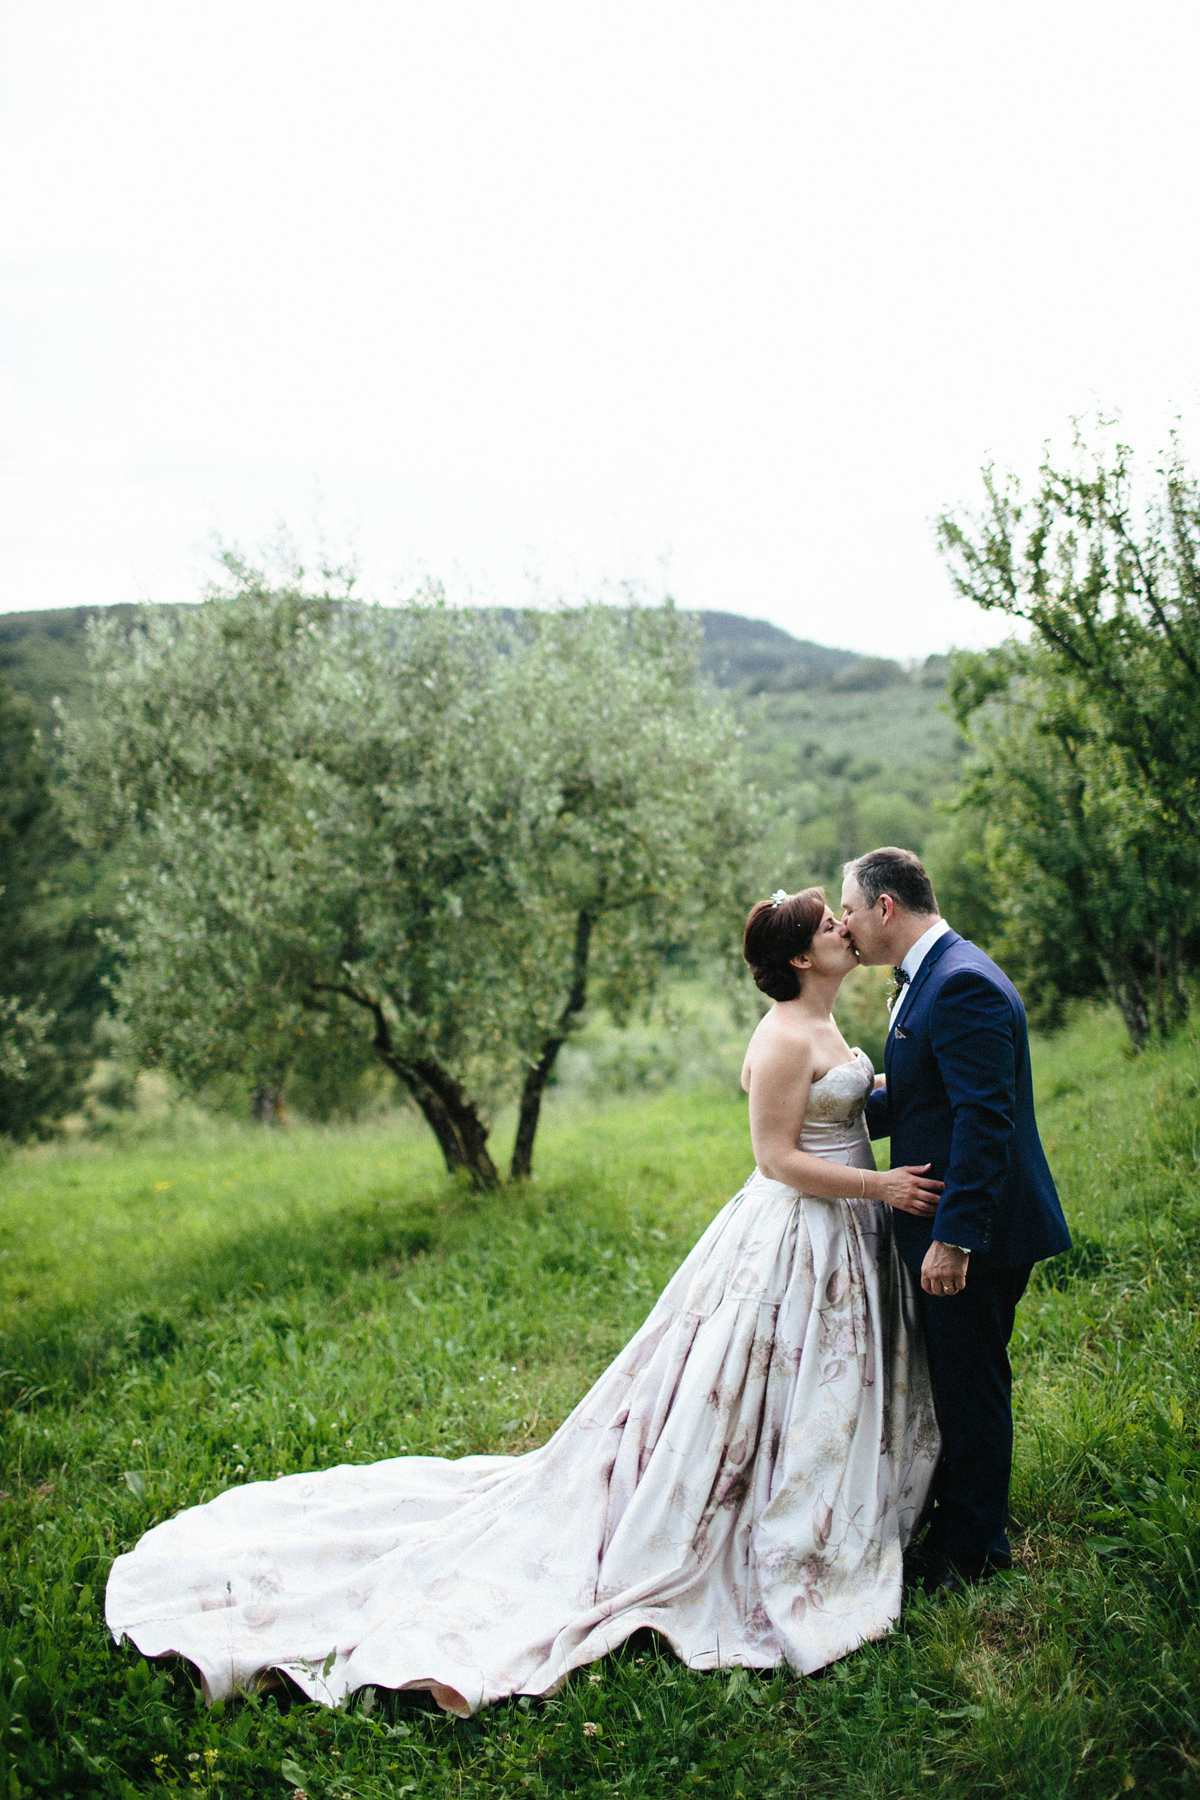 Bride Lucy wore a gold floral Vera Wang gown for her romantic outdoor wedding in the Italian countryside. Images captured by Claudia Rose Carter.